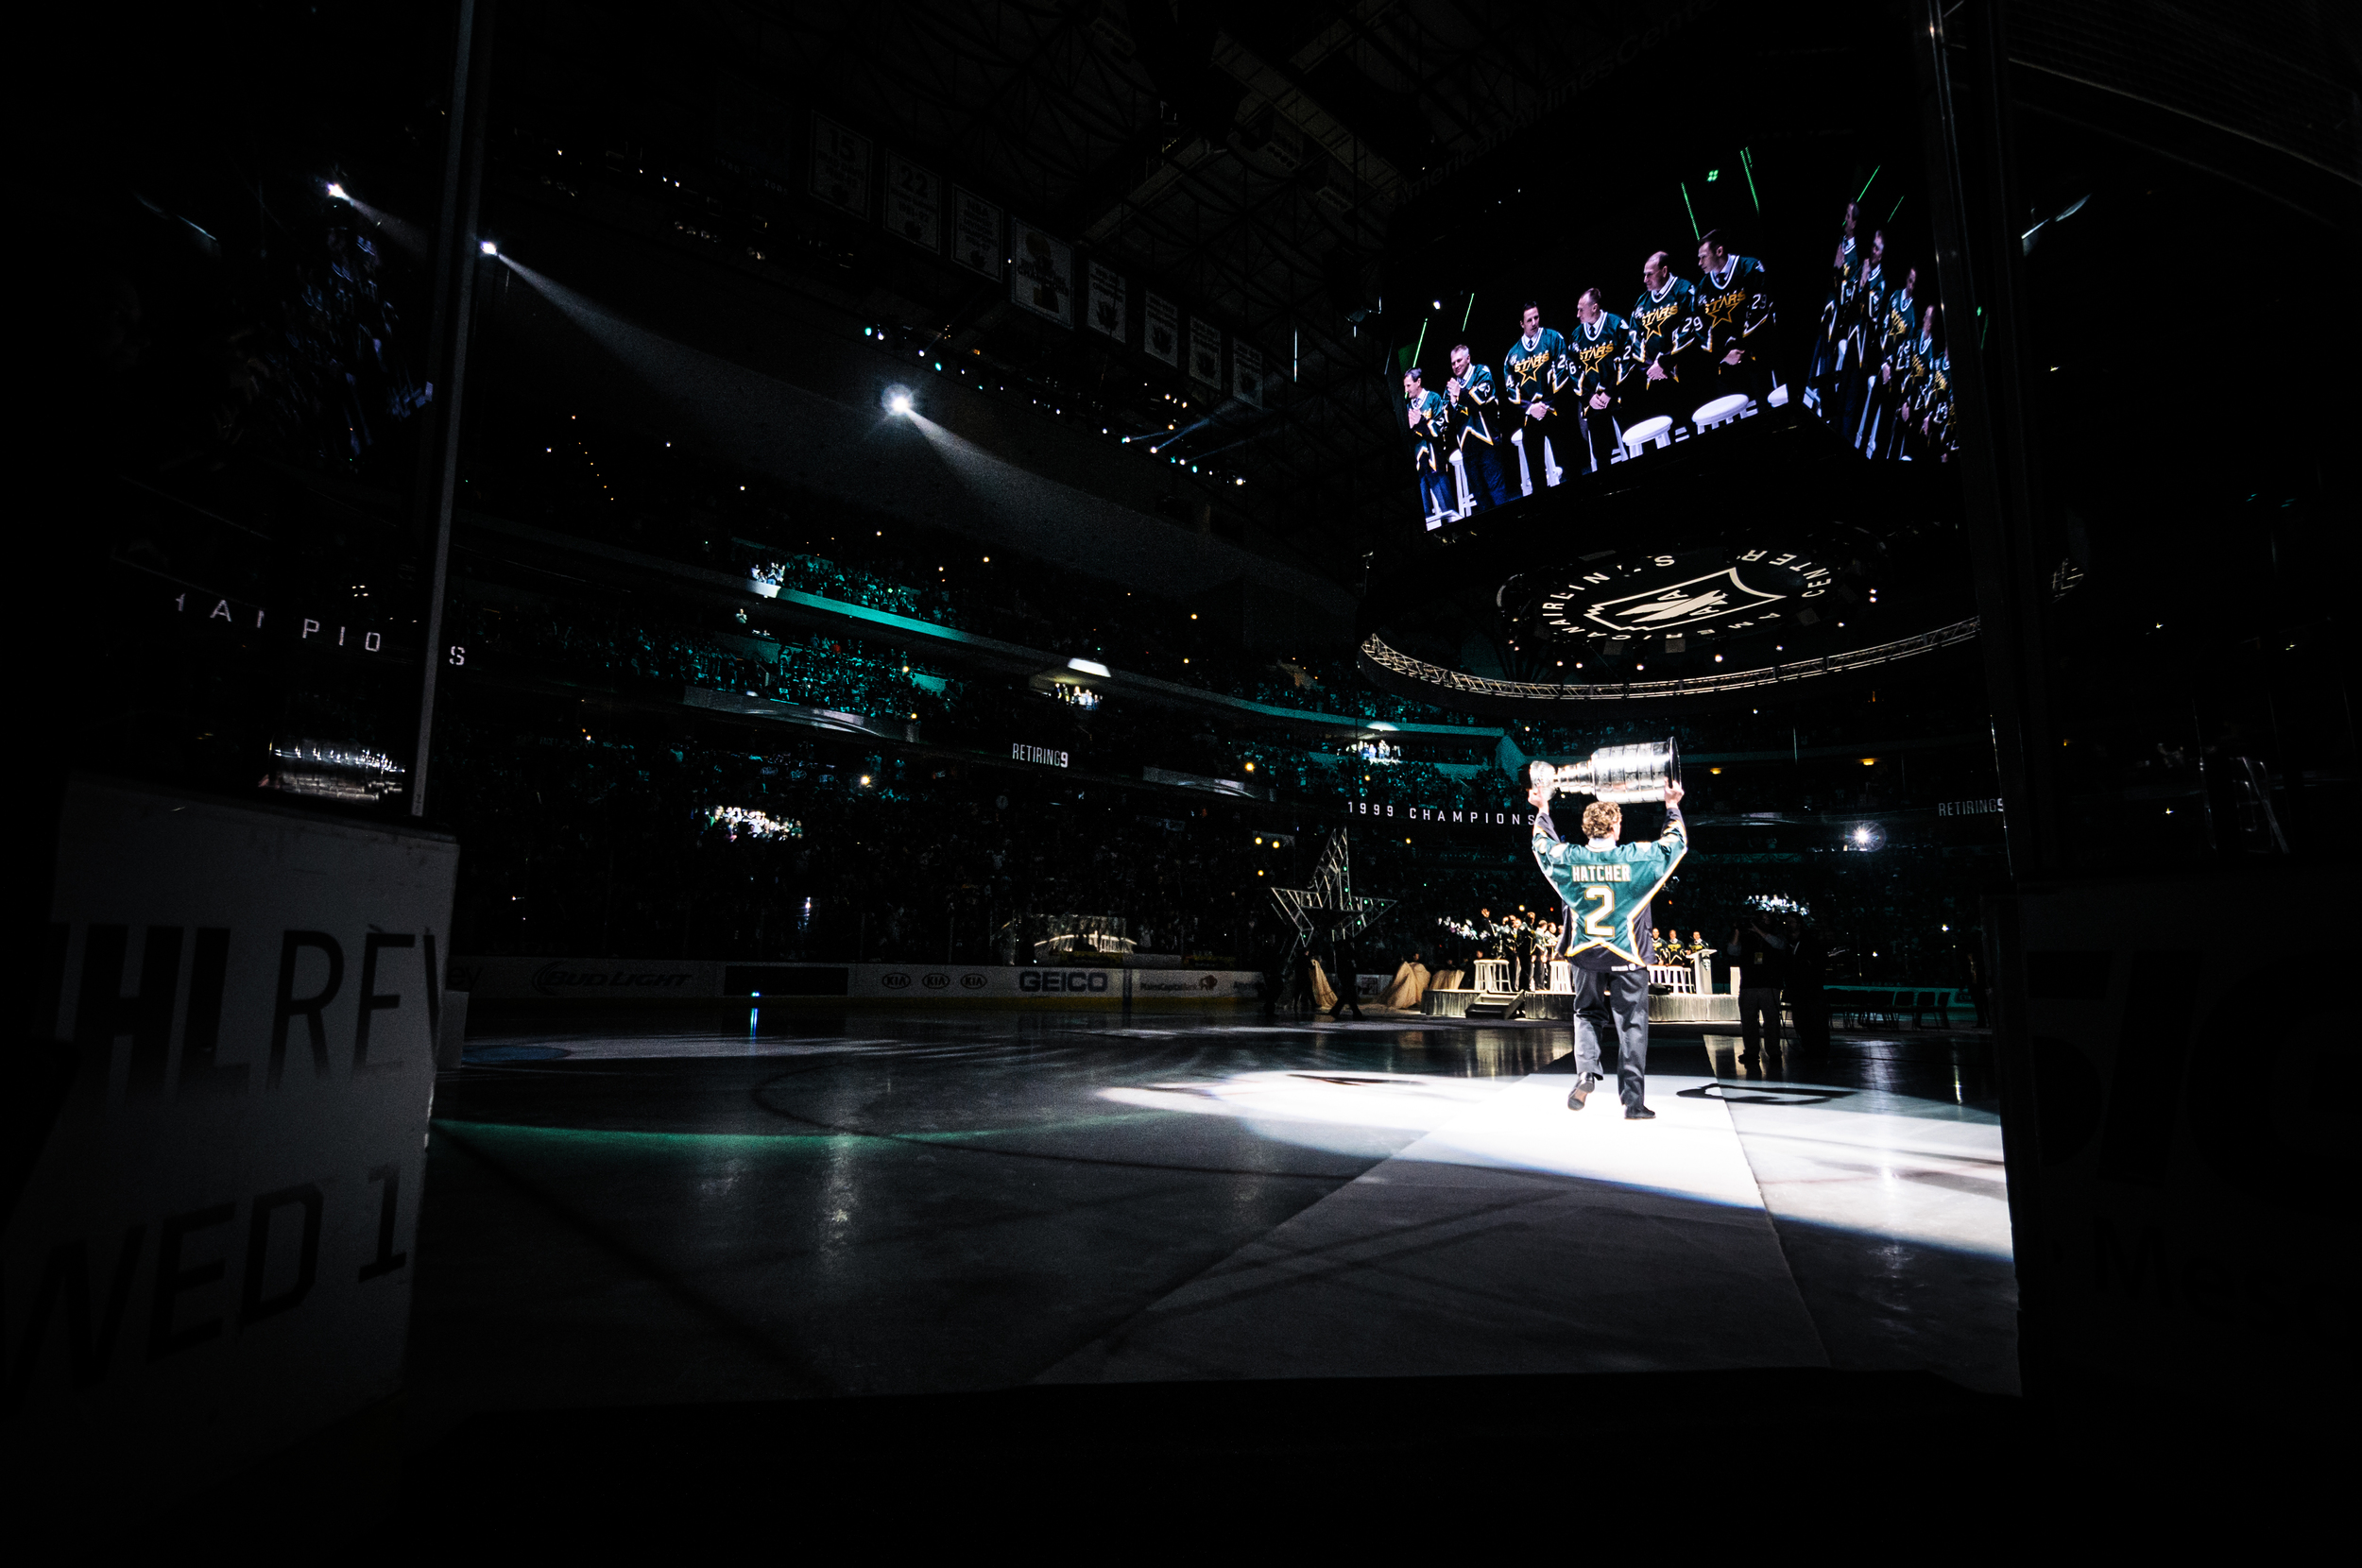 Derian Hatcher, captain of the '99 Stanley Cup winning Dallas Stars, carries The Cup into the arena to kick off the retirement of Mike Modano's number 9.